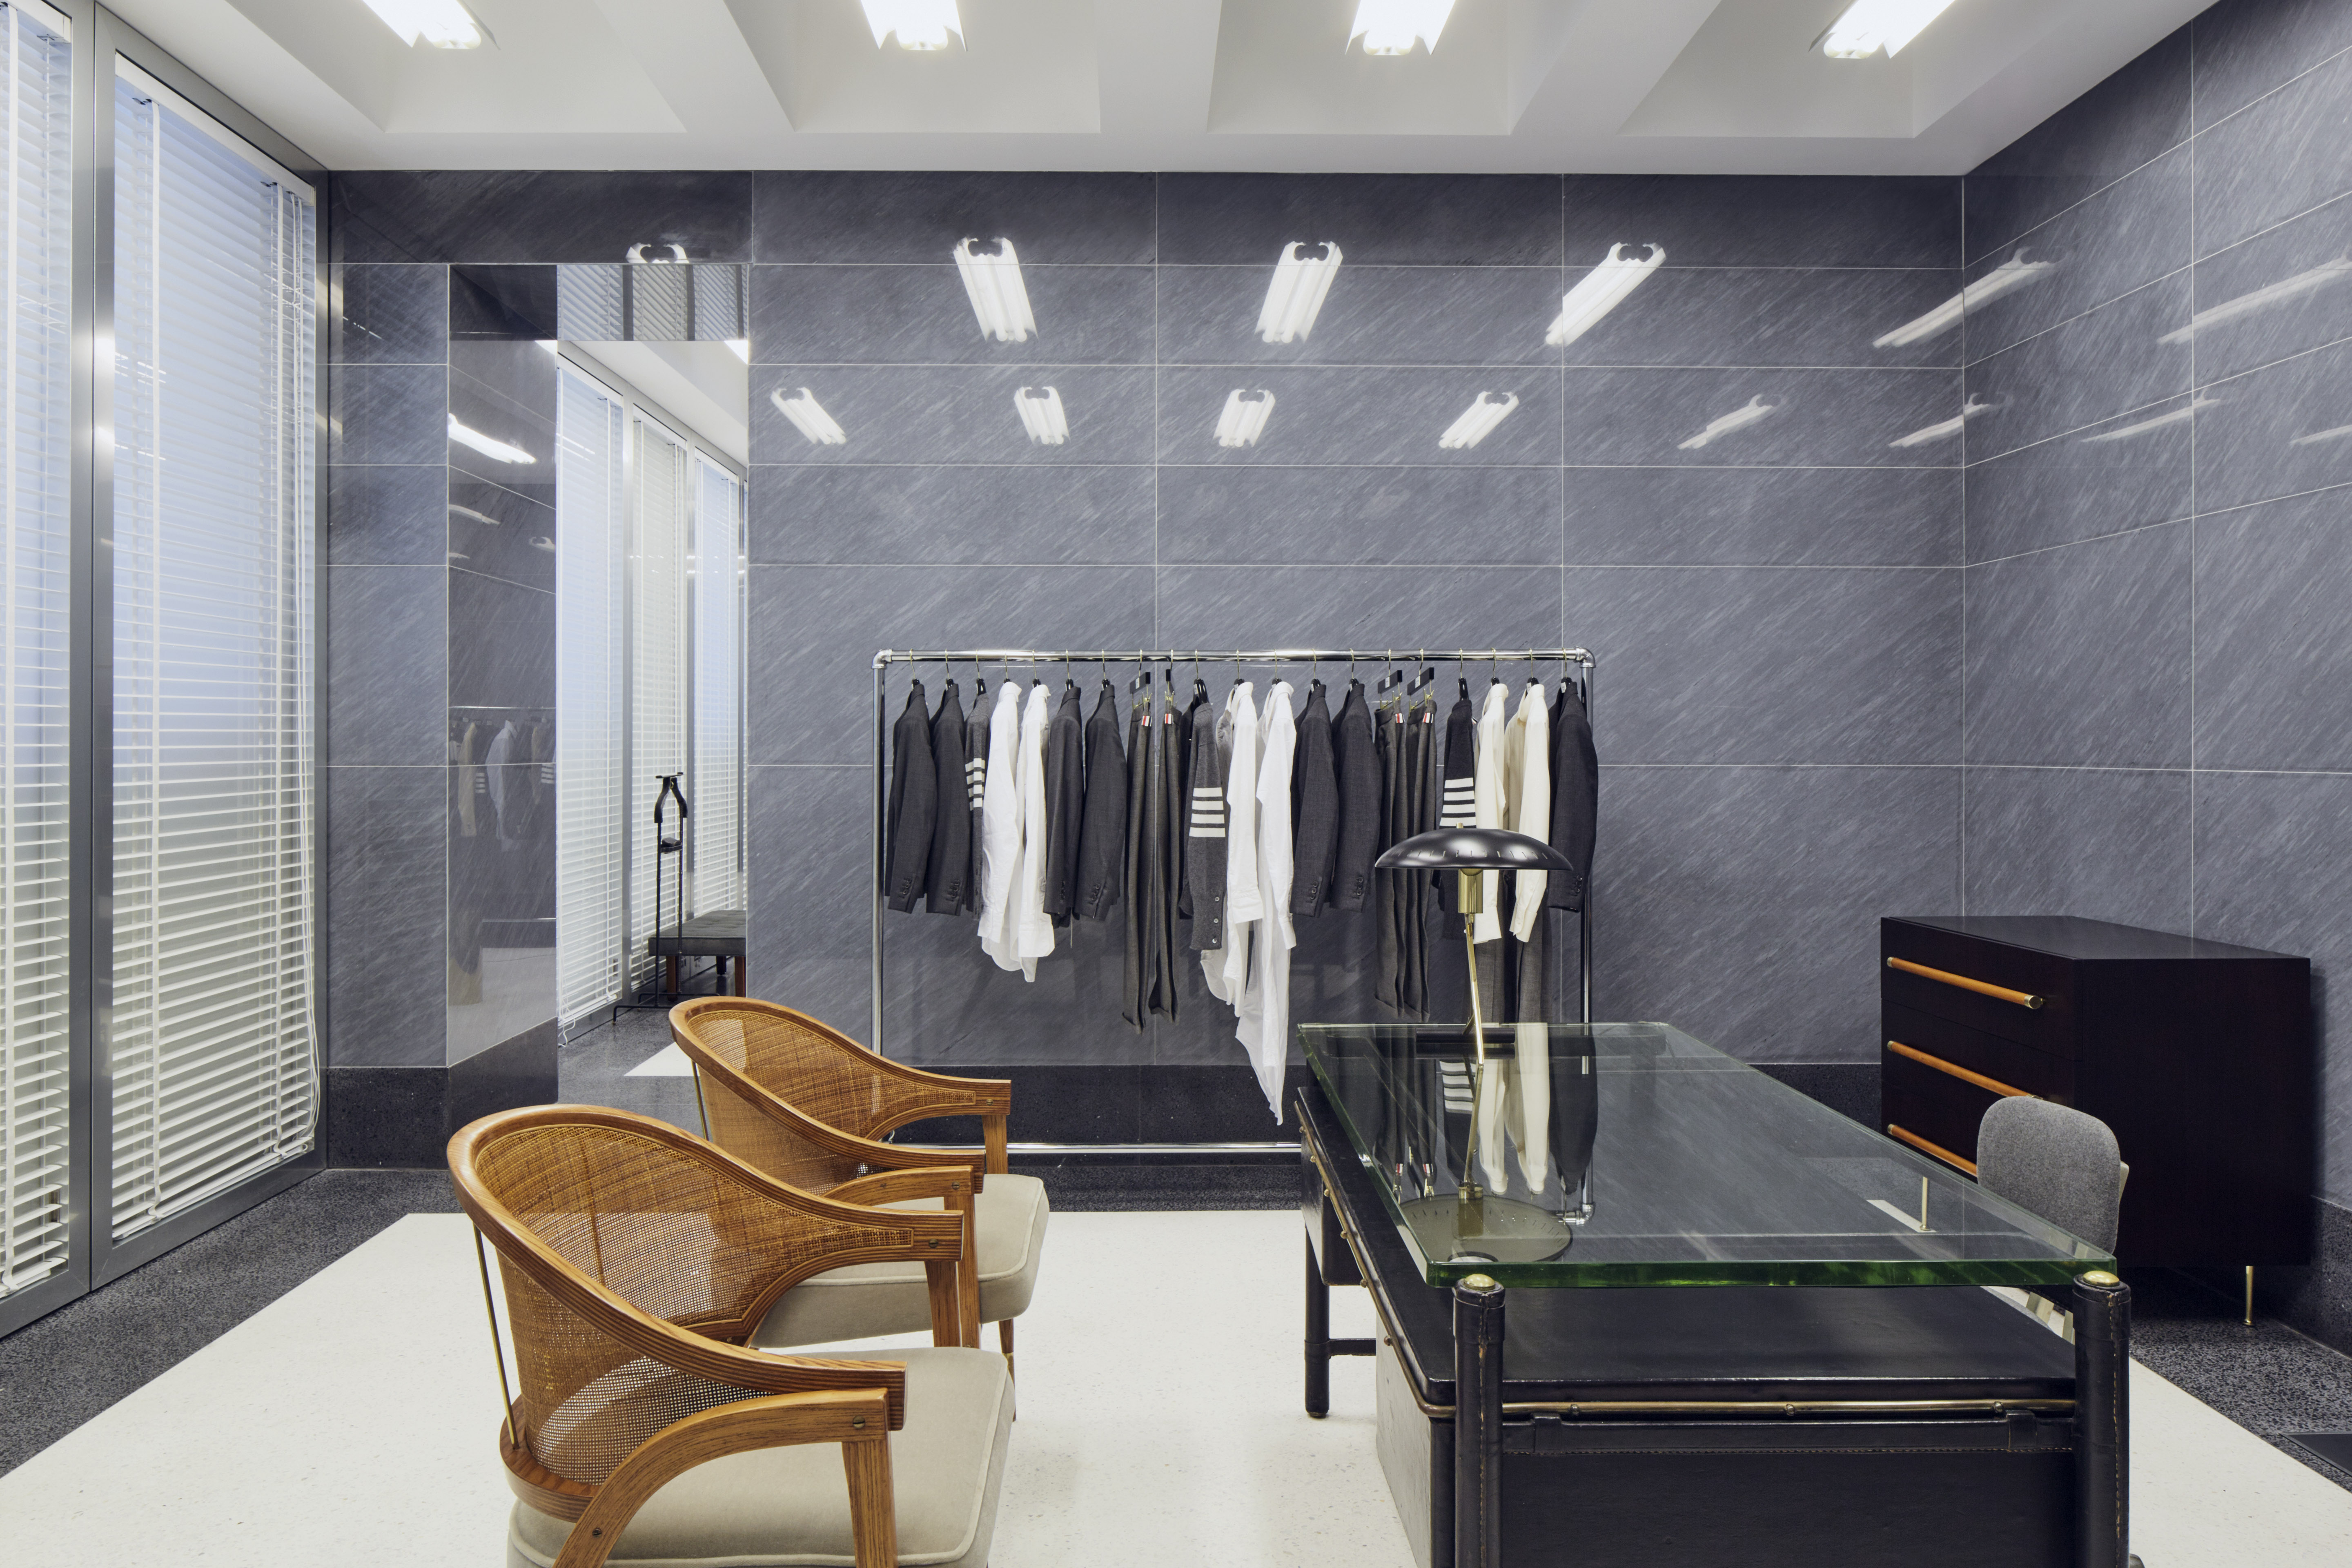 THOM BROWNE'S MILAN STORE OPENS